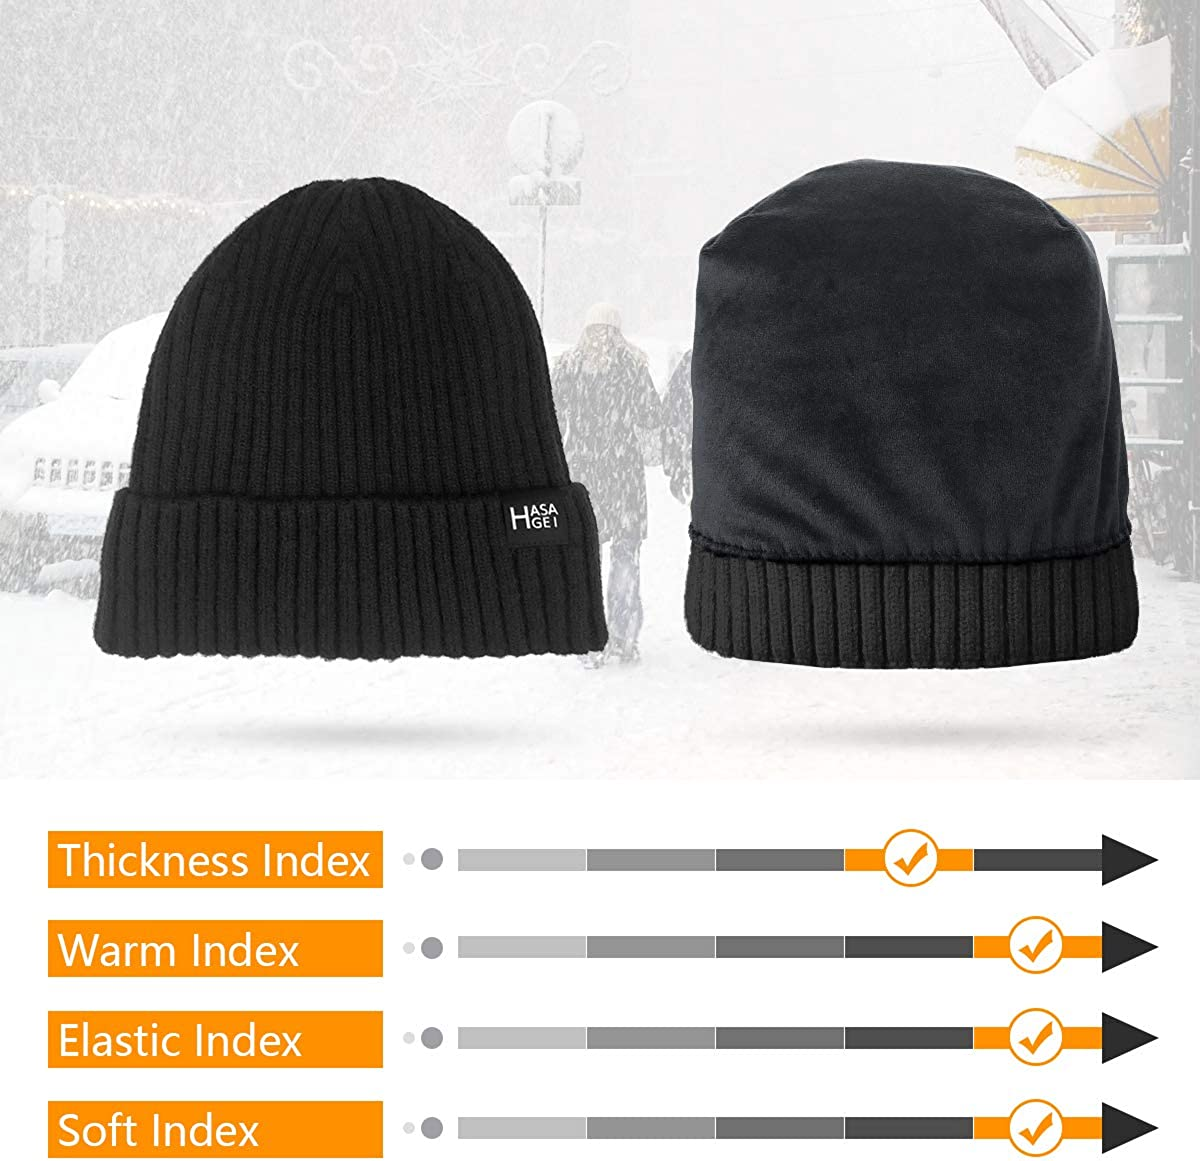 HASAGEI Beanie Hat Mens Running Hat Slouch Beanie Skull Caps for Men with Breathable Comfortable High Elasticity Windproof for Running Skiing Cycling Snowboarding Climbing Motorcycling